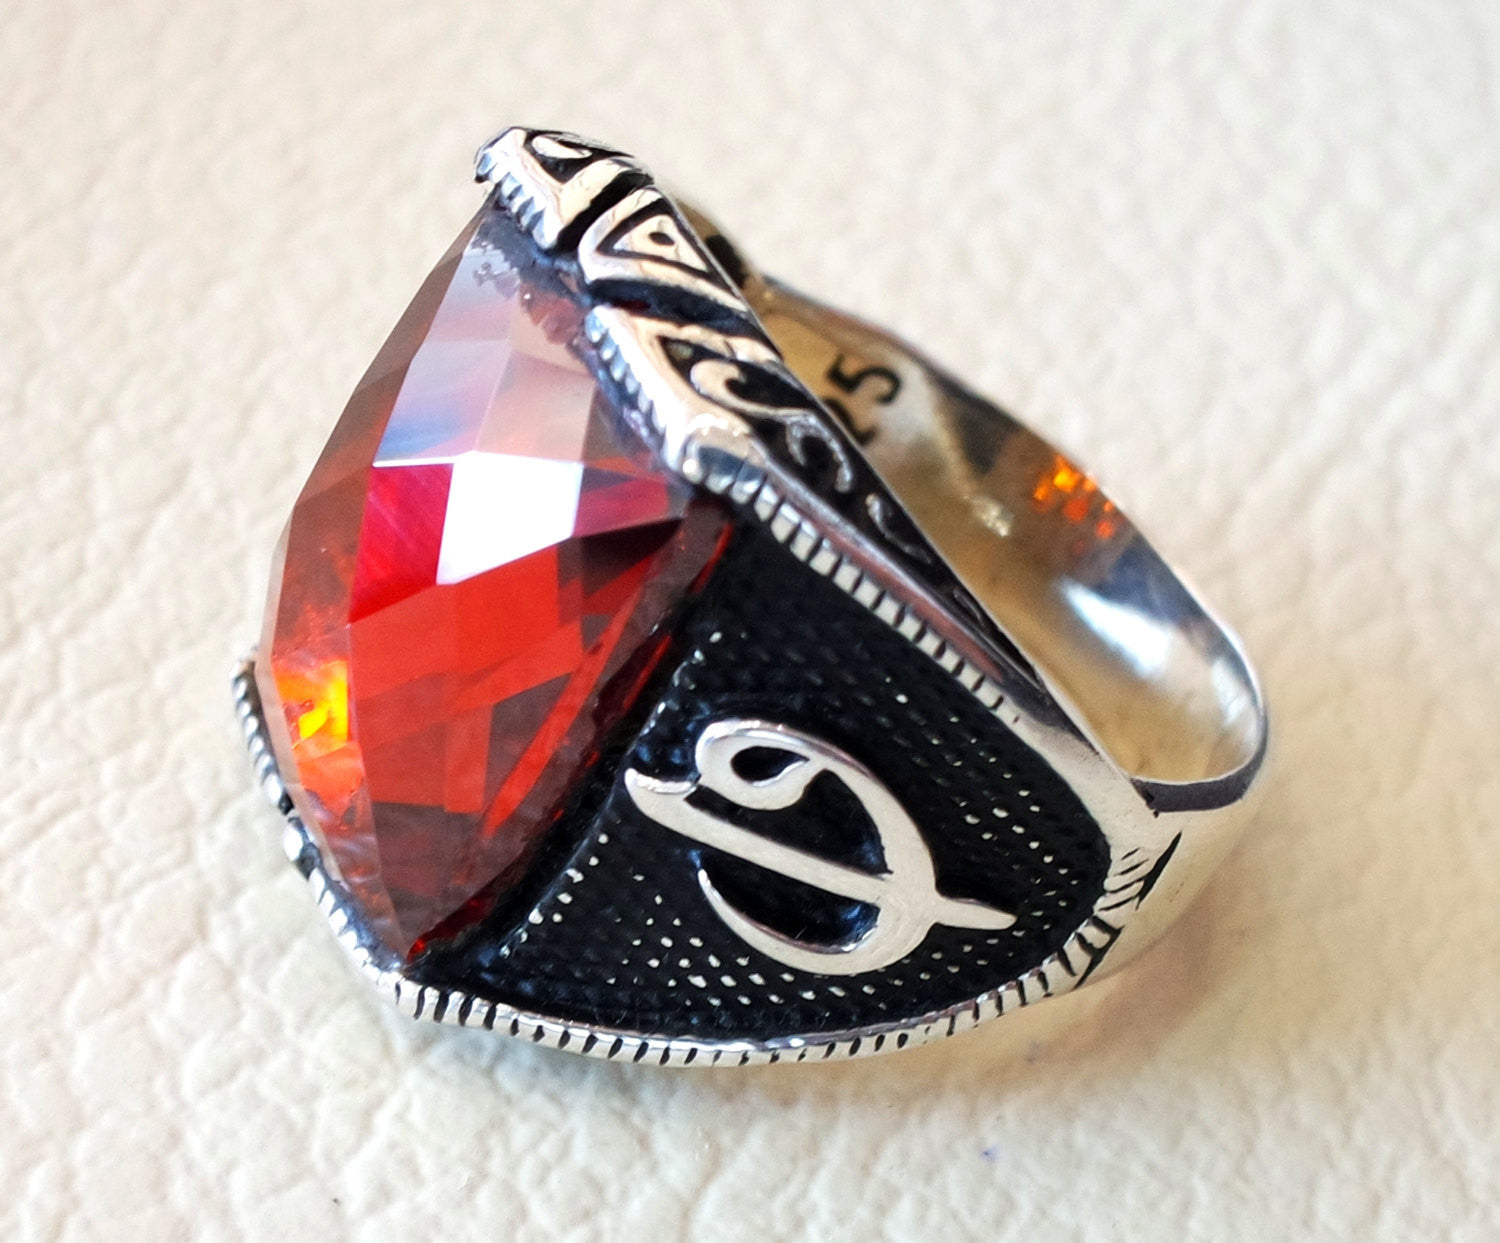 ottoman red ruby imitation  sterling silver 925 antique men ring arabic waw vav jewelry any size fast shipping rectangular stone